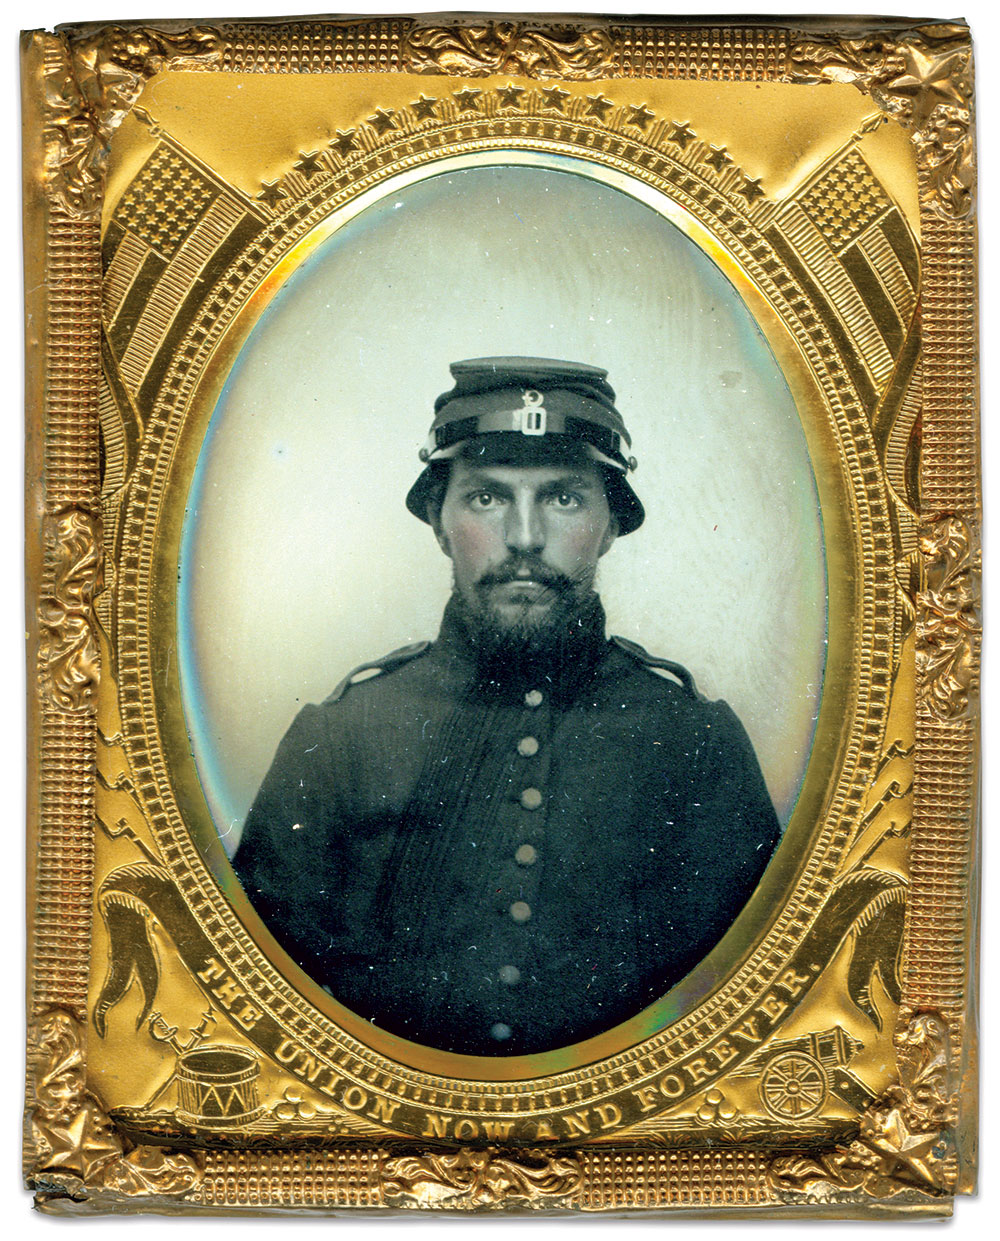 This unidentified private in Company G of the 6th or 8th New Hampshire infantry wears a modified version of the Havelock cap produced by Purinton & Ham. Possibly due to the unpopularity of the Havelock hats issued to the previous three regiments, this version was patterned after a more orthodox forage cap, but had a stiffened leather visor curved around its sides and rear. He also wears a frock coat made by Lincoln & Shaw, of Concord, which has a plain collar and cuffs, and shoulder straps edged with sky blue. Ninth-plate tintype by French & Sawyer of Keene, N.H. Ron Field Collection.